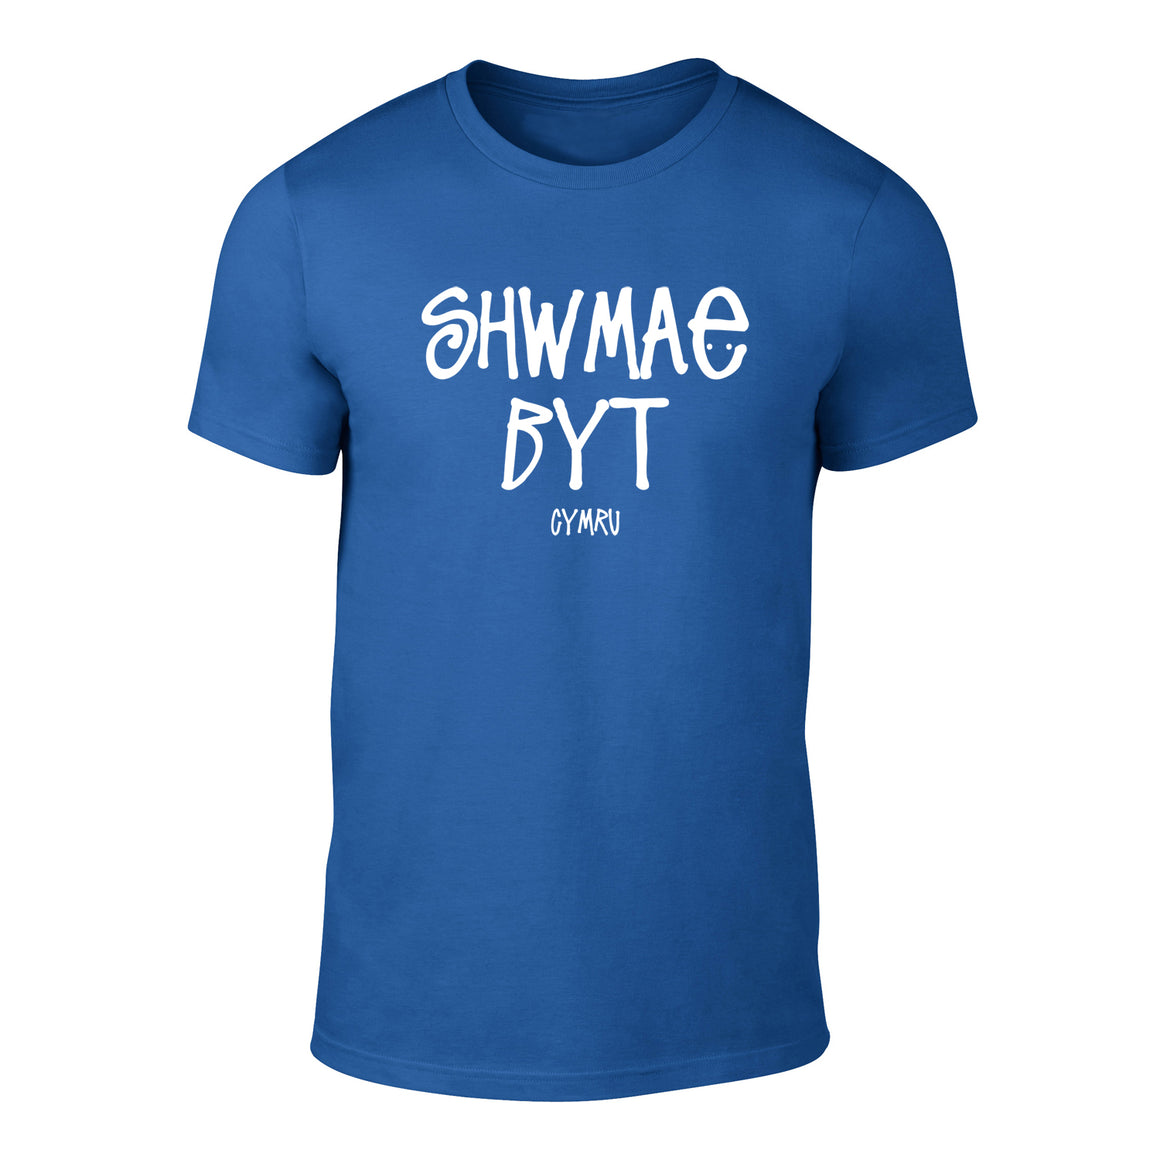 Shwmae Byt - Urban Welsh T-Shirt BLACK